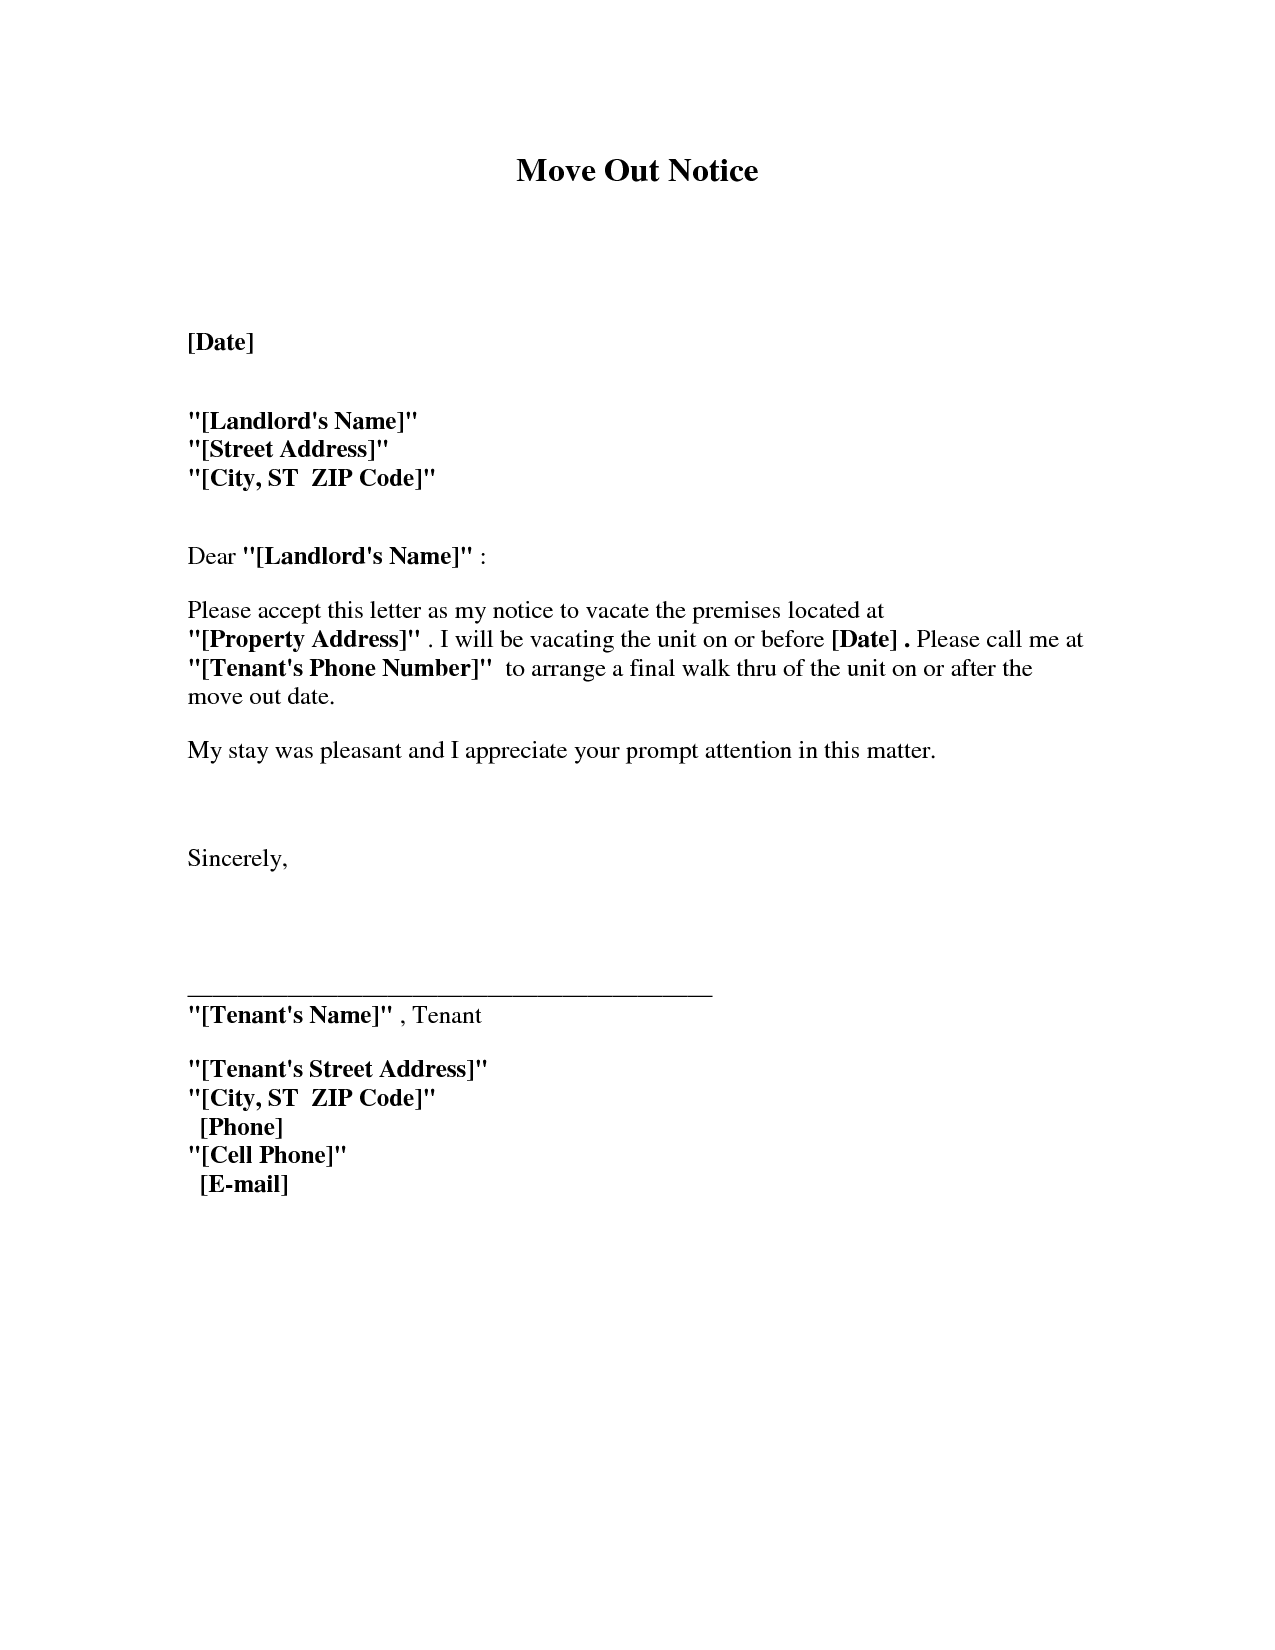 17 Best Photos of Letter To Tenant Move Out Notice - Sample